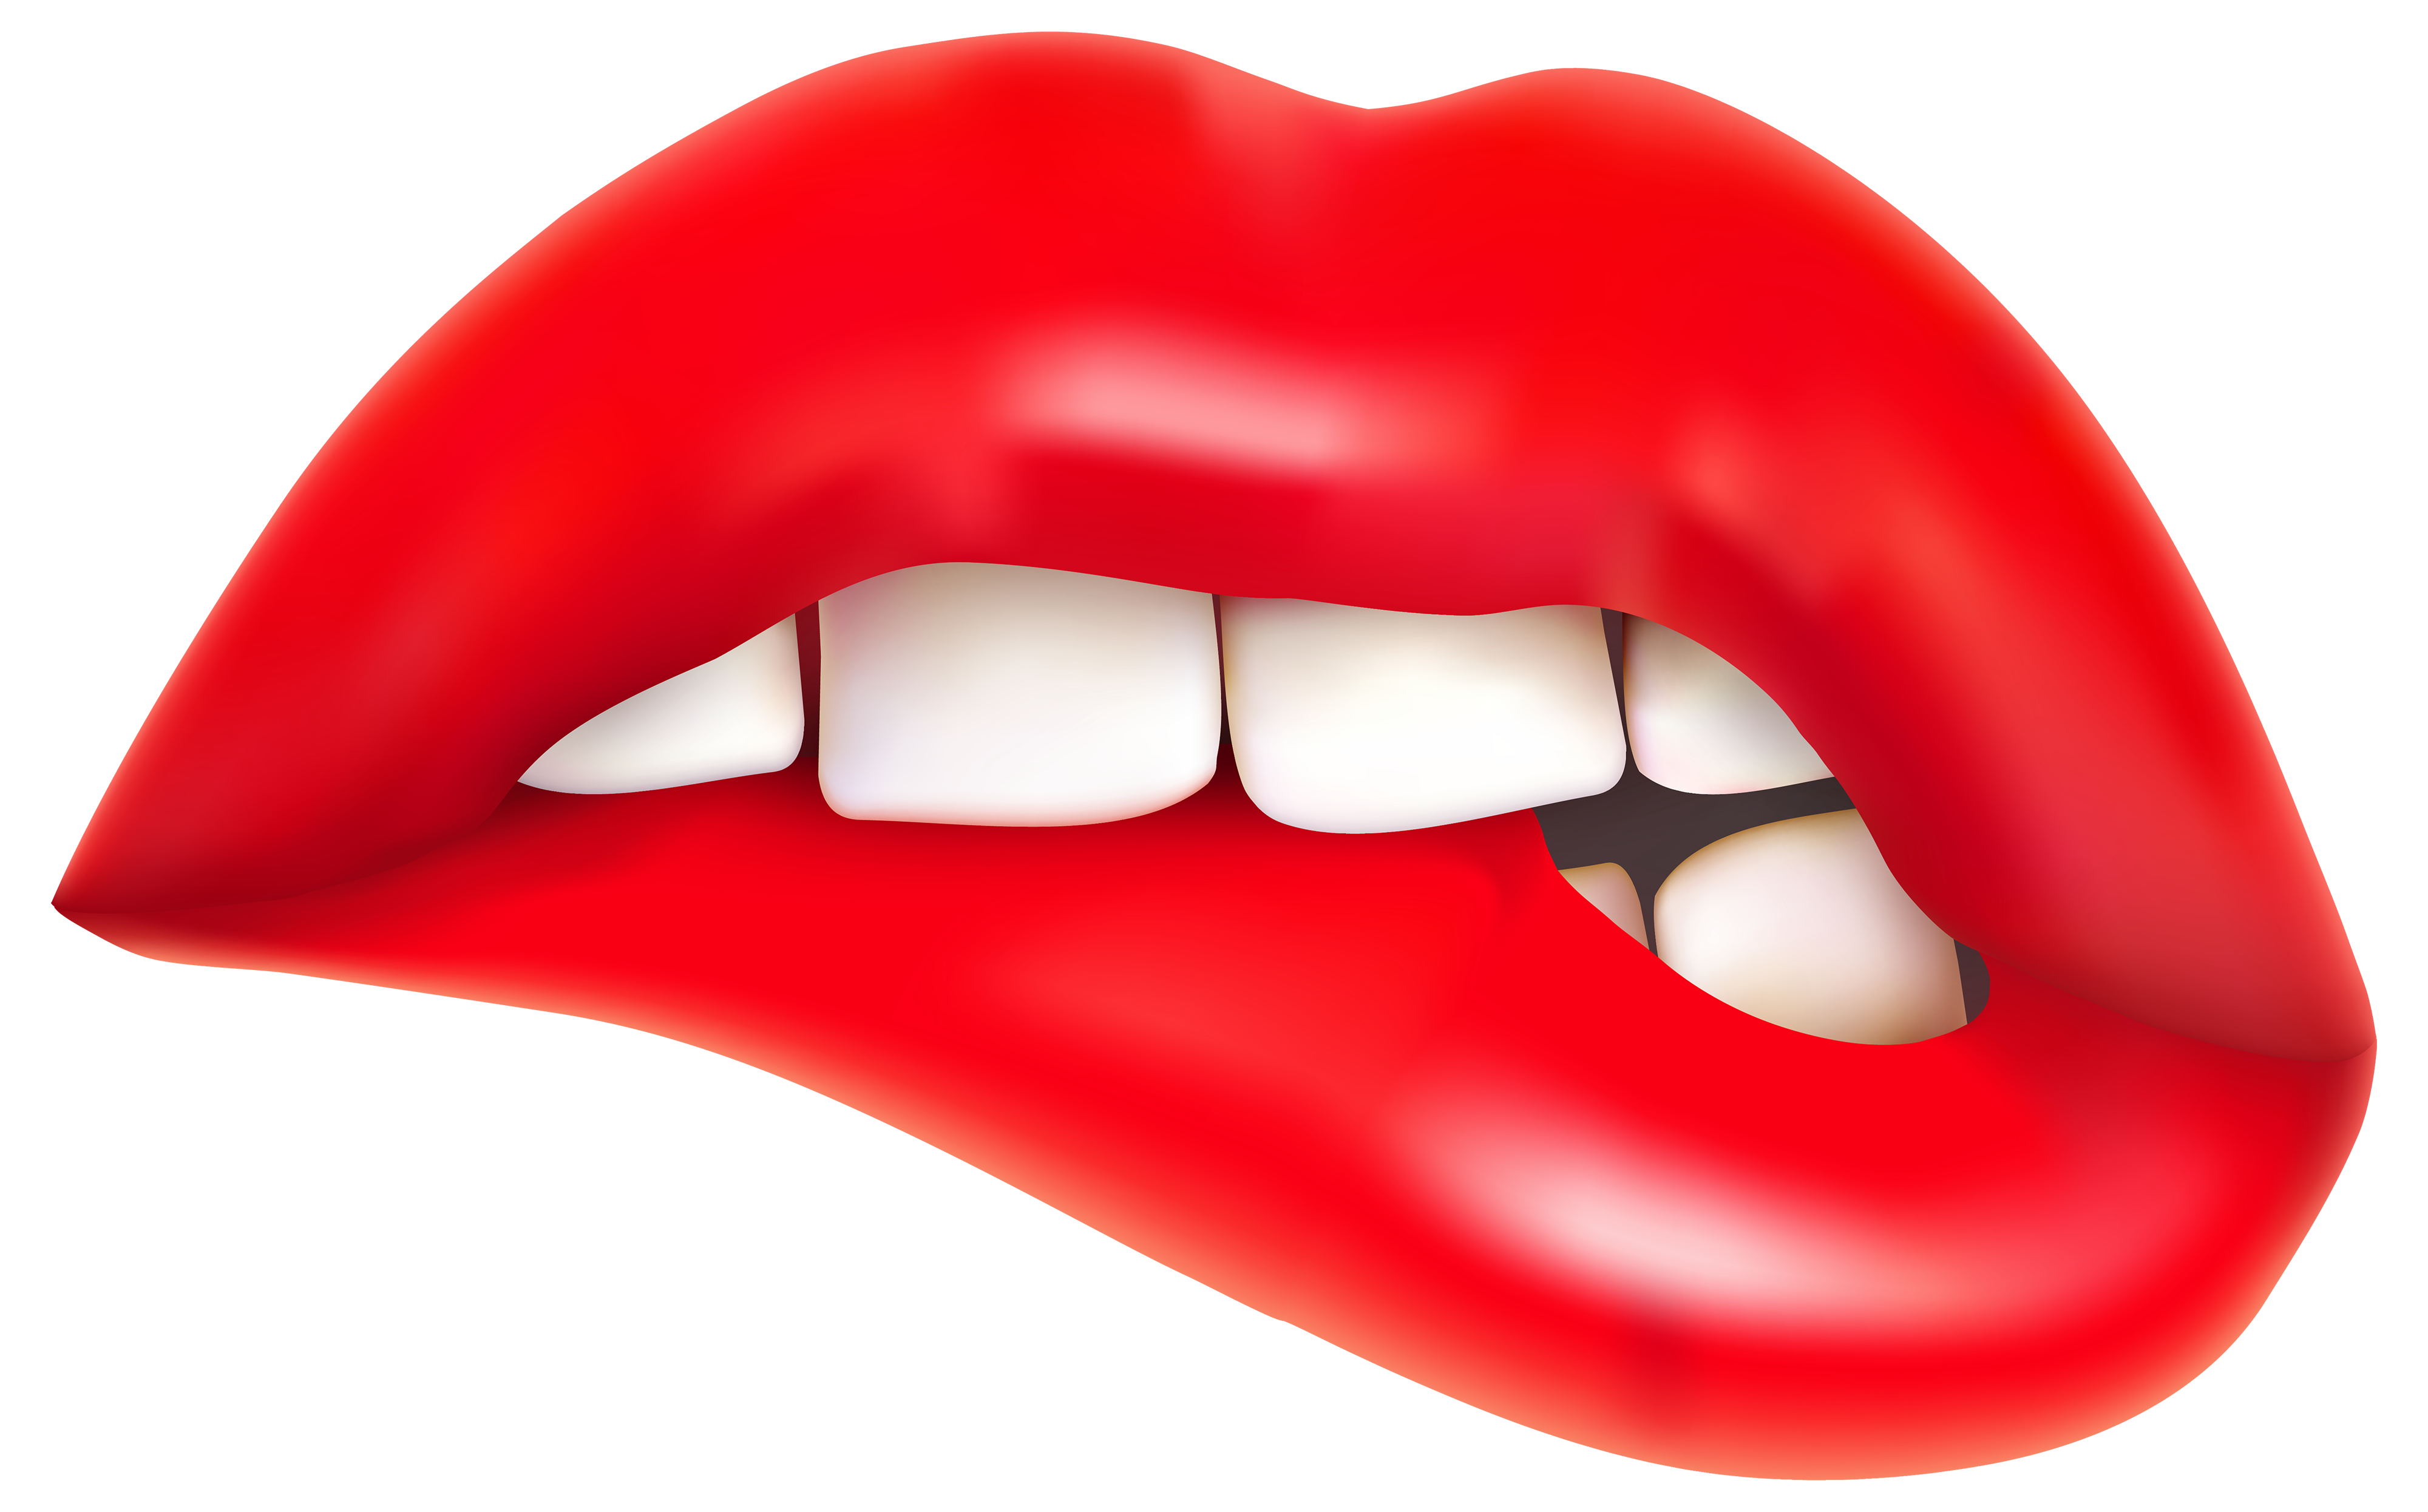 lips clipart at getdrawings com free for personal use lips clipart rh getdrawings com red lips images clip art red lips clip art free